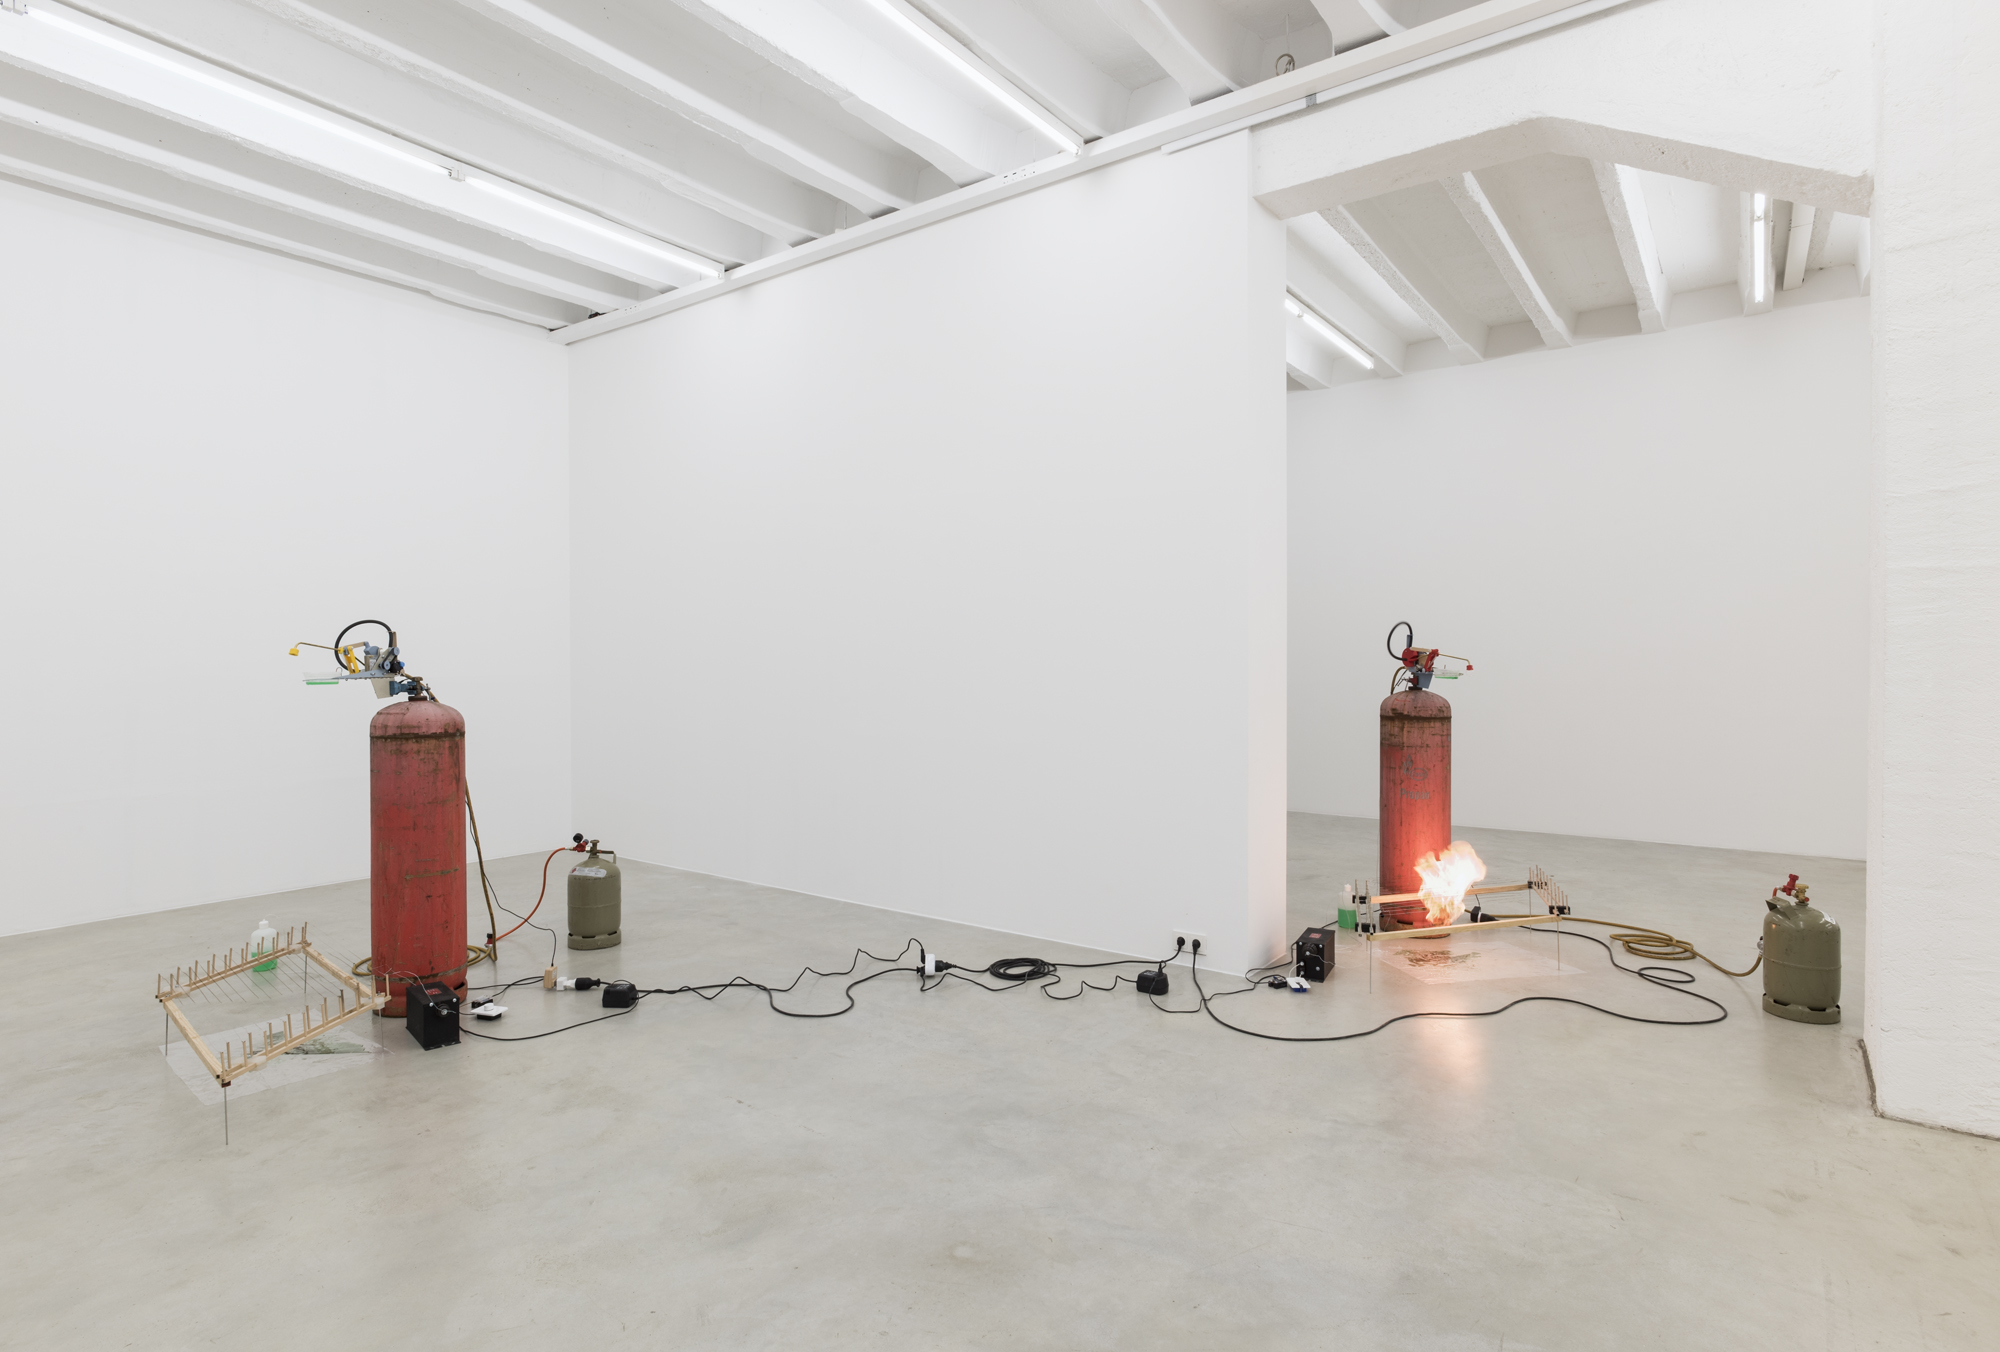 Ariel Schlesinger, Elvira, exhibition view, Galerija Gregor Podnar, Berlin 2017. Photo: Marcus Schneider